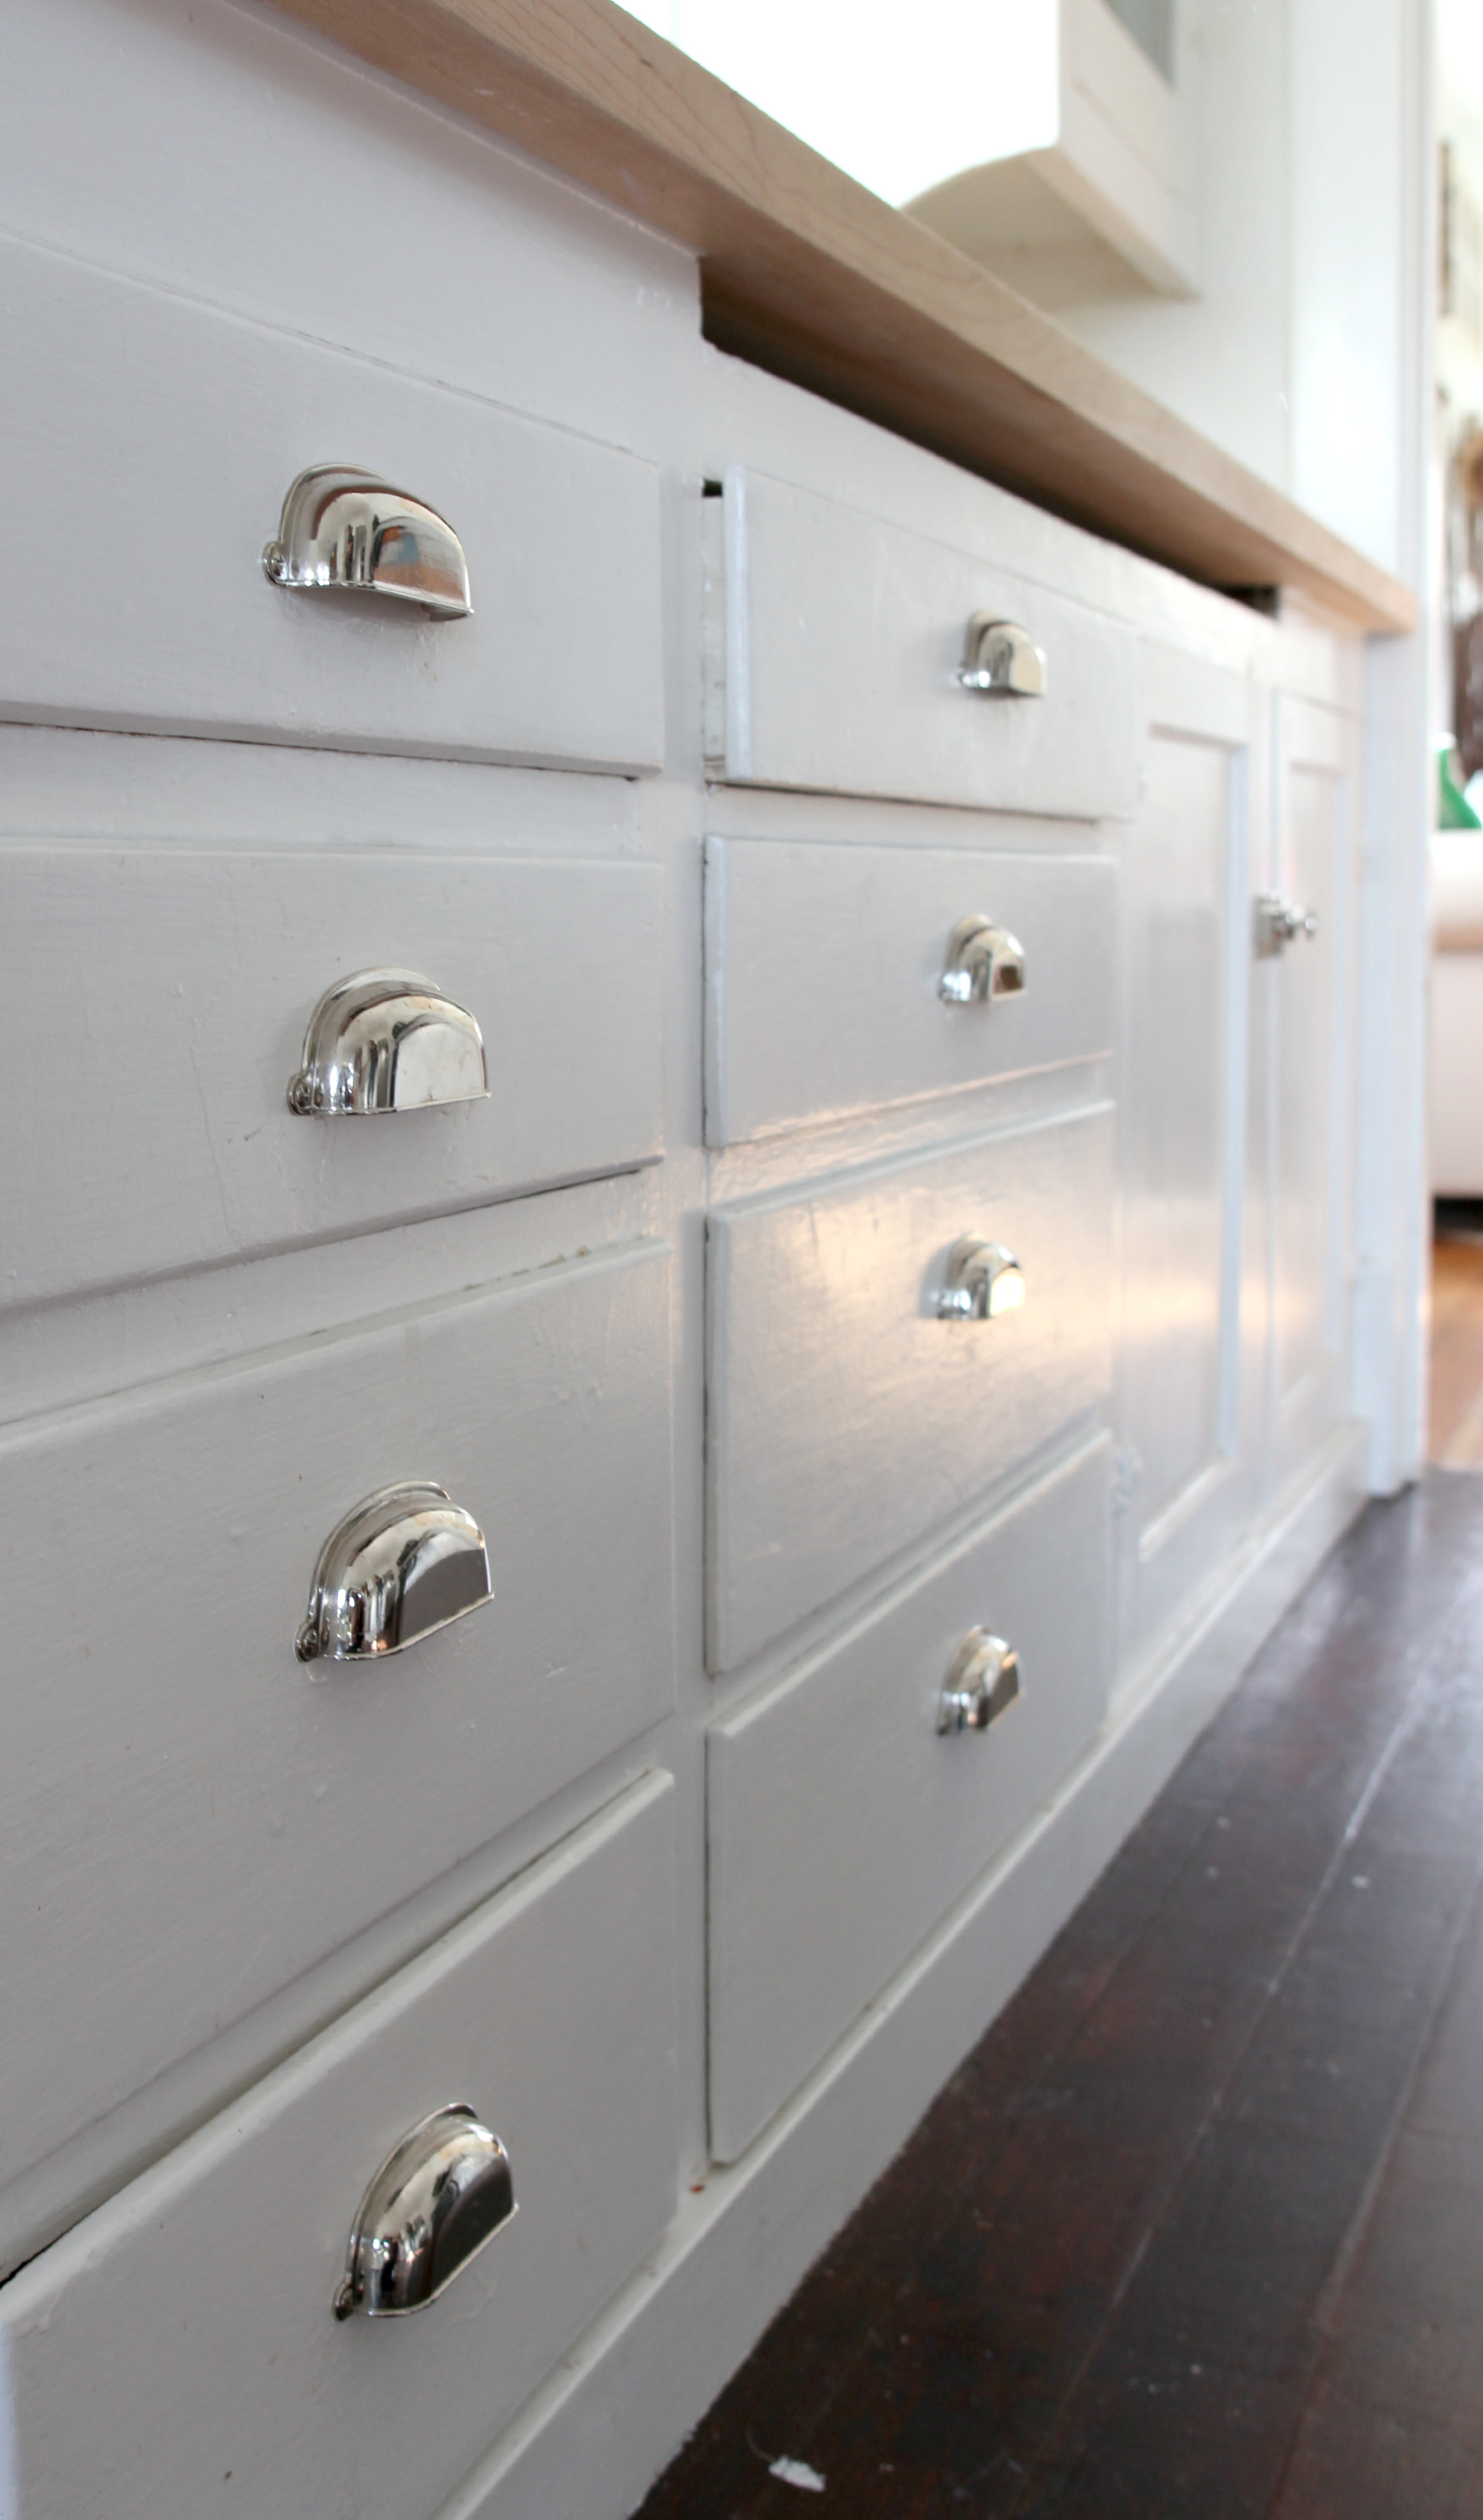 The-Grit-and-Polish-Original-1926-Cabinets-with-New-Clamshell-Pulls.jpg.jpg